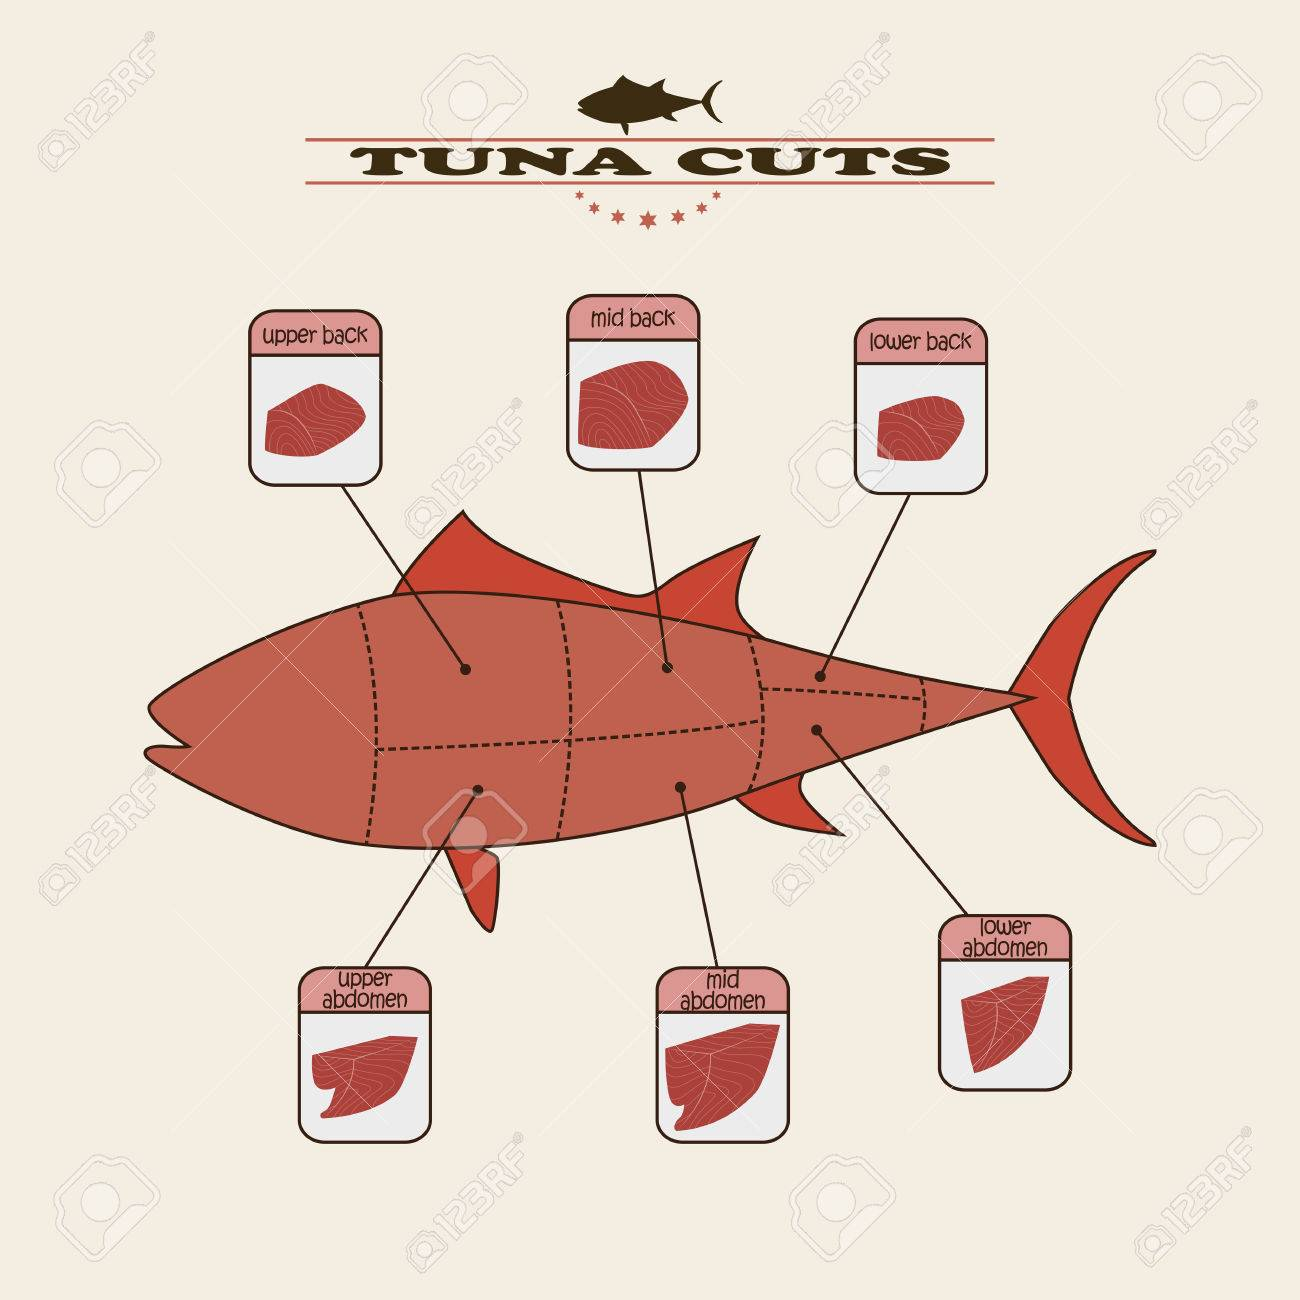 Info Graphic Of The Tuna Cuts On Light Background Royalty Free Cliparts Vectors And Stock Illustration Image 57646787